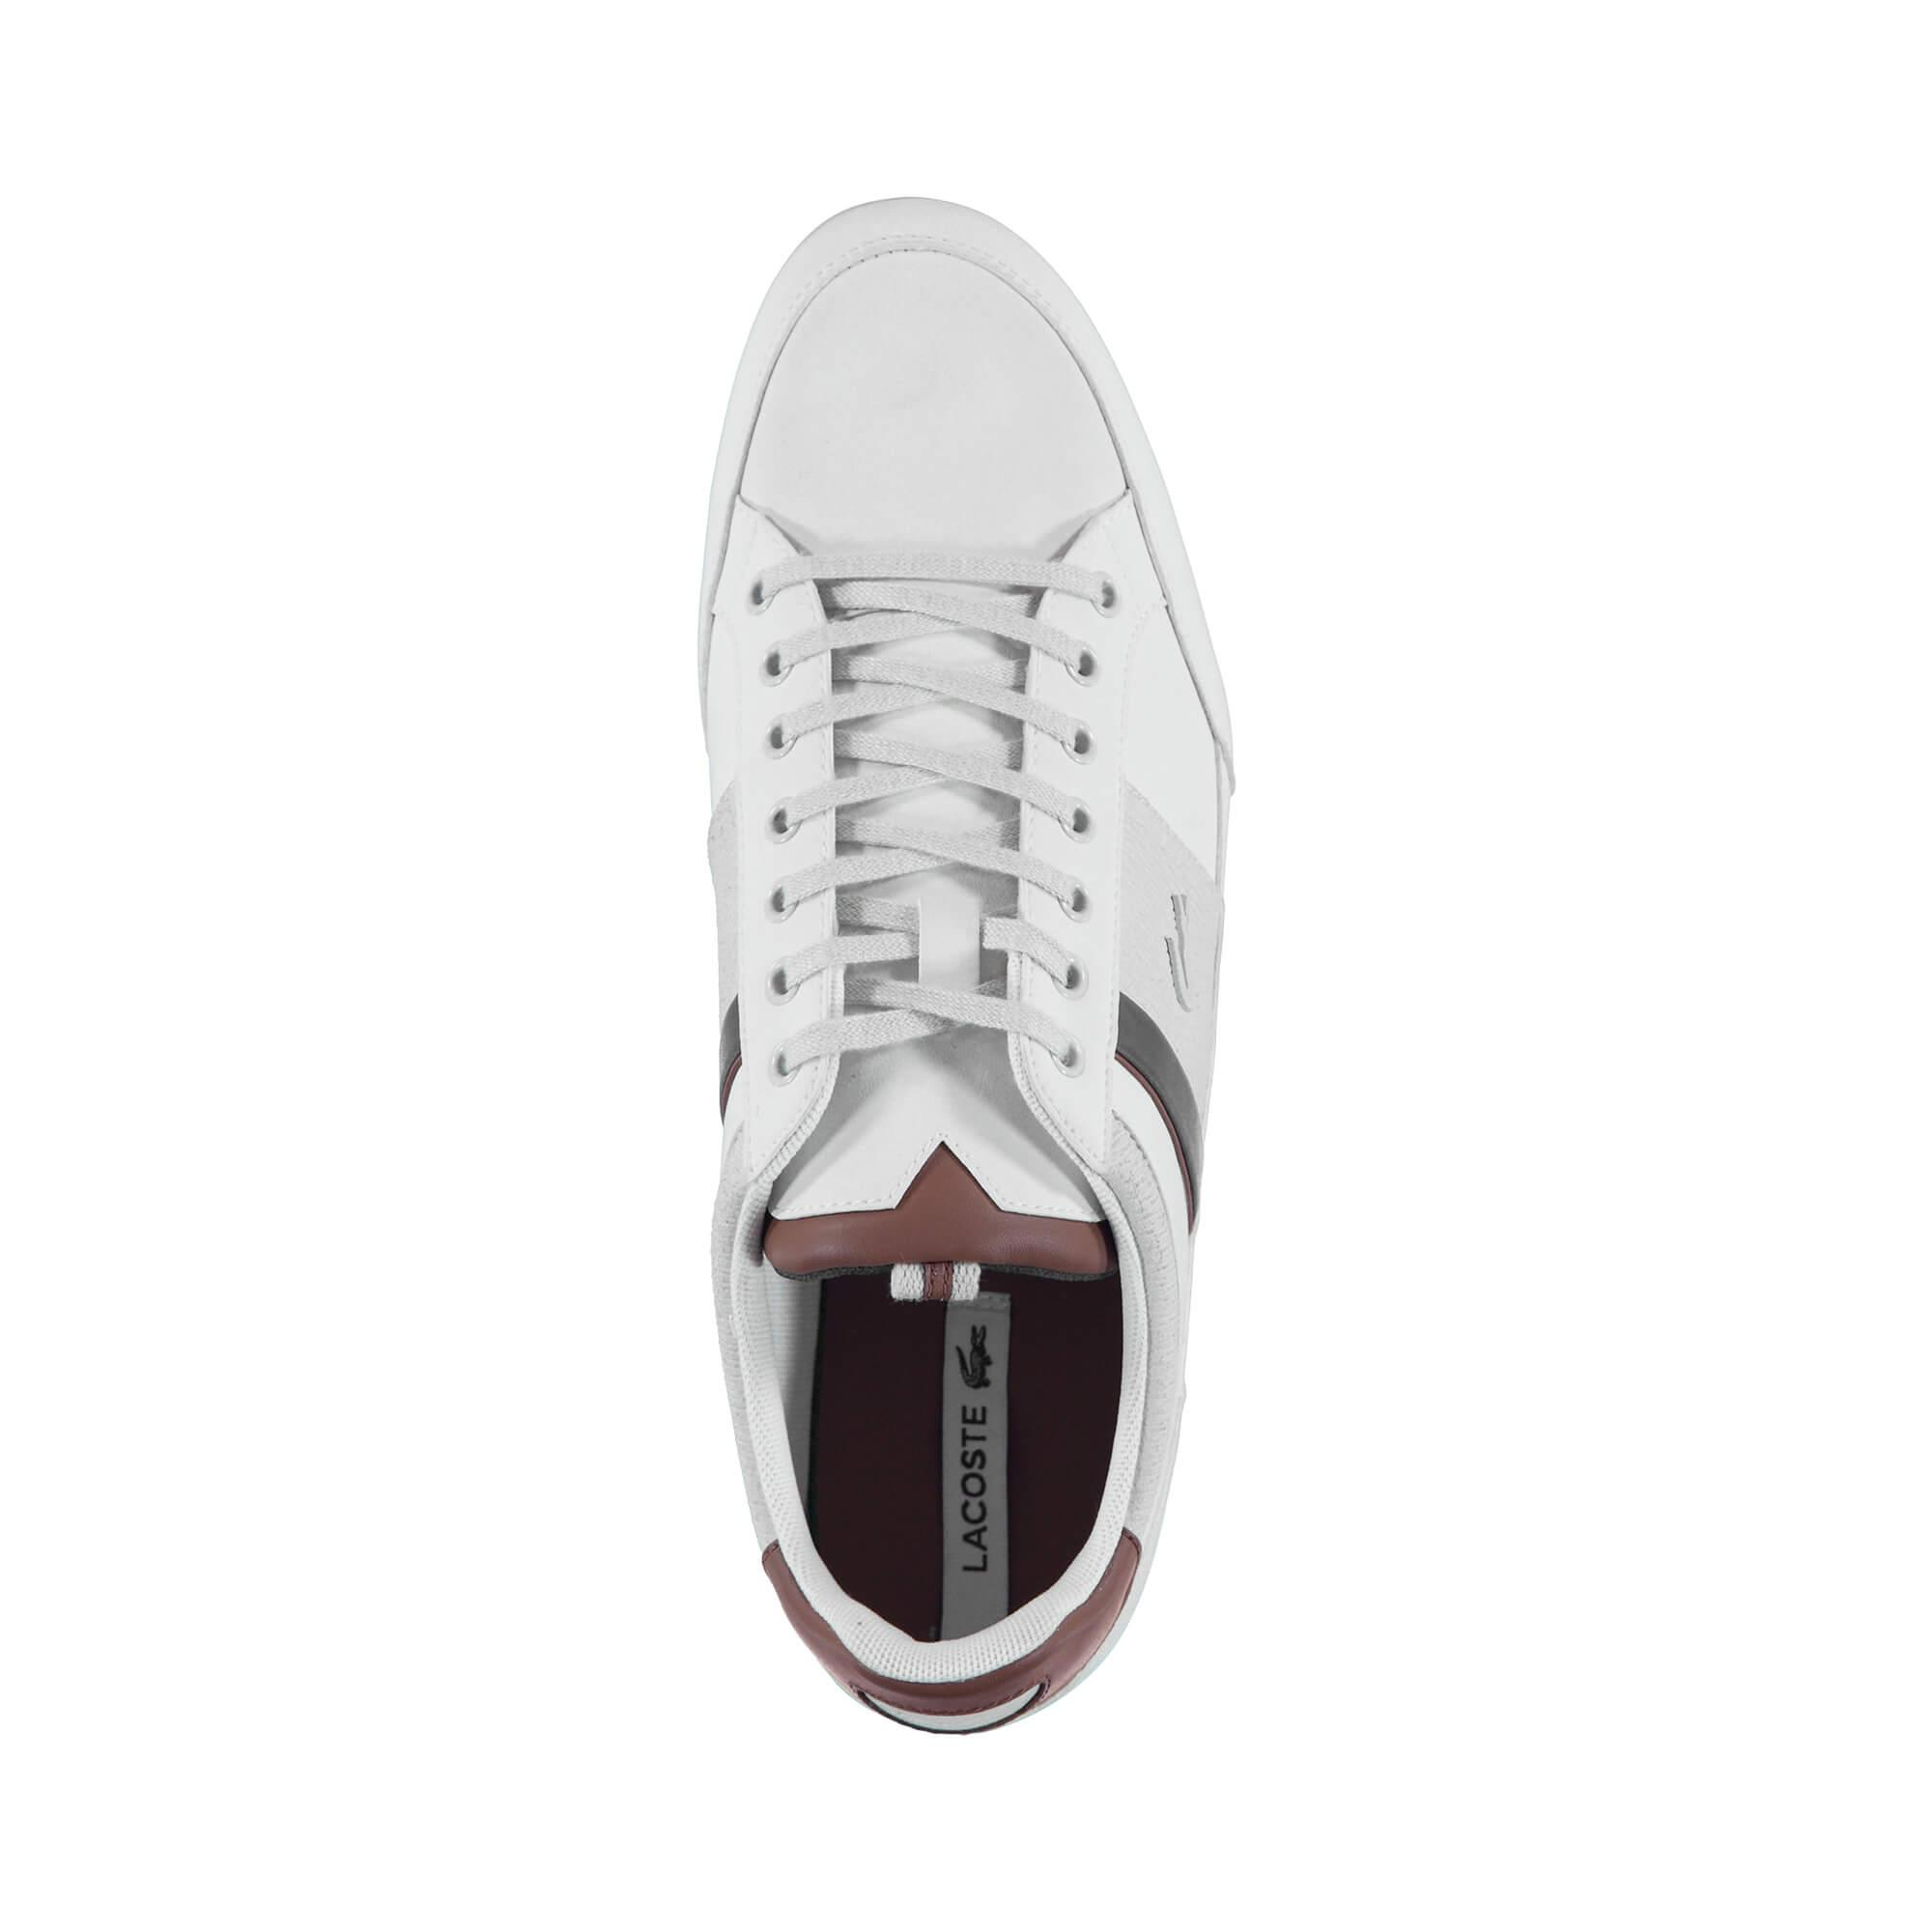 Lacoste Men's Chaymon Leather Sneakers